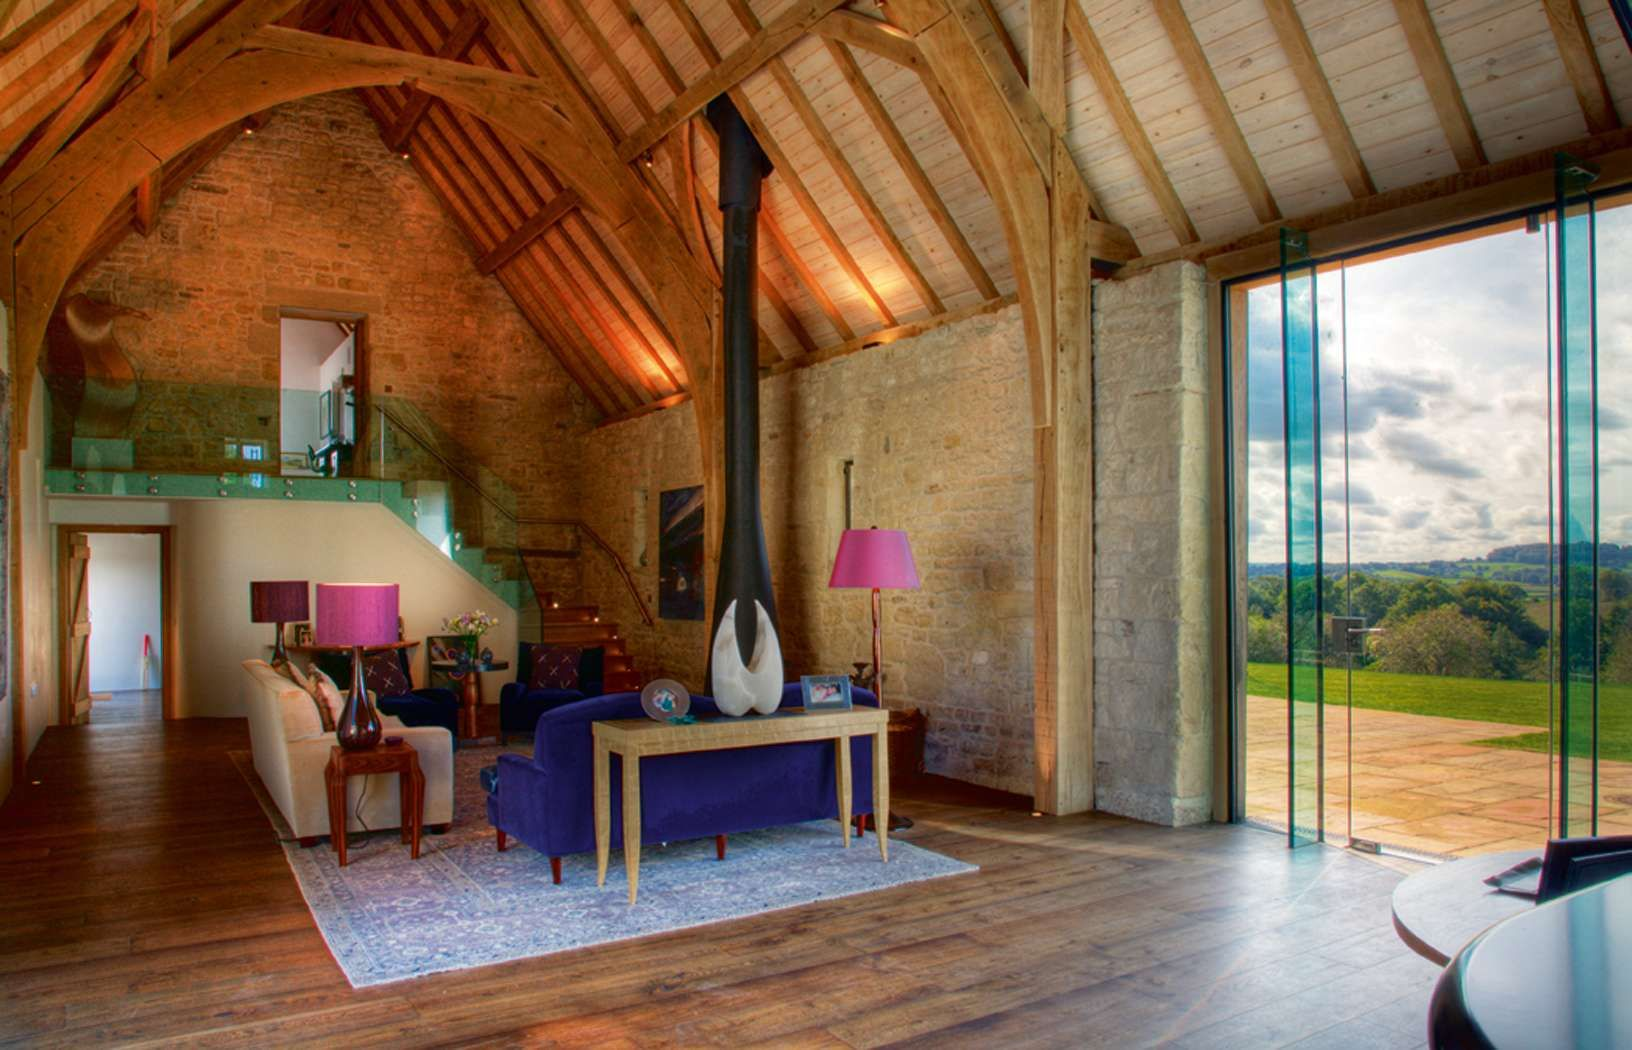 Barn Conversion Google Search Home Inspiration Pinterest - Small barns turned into homes